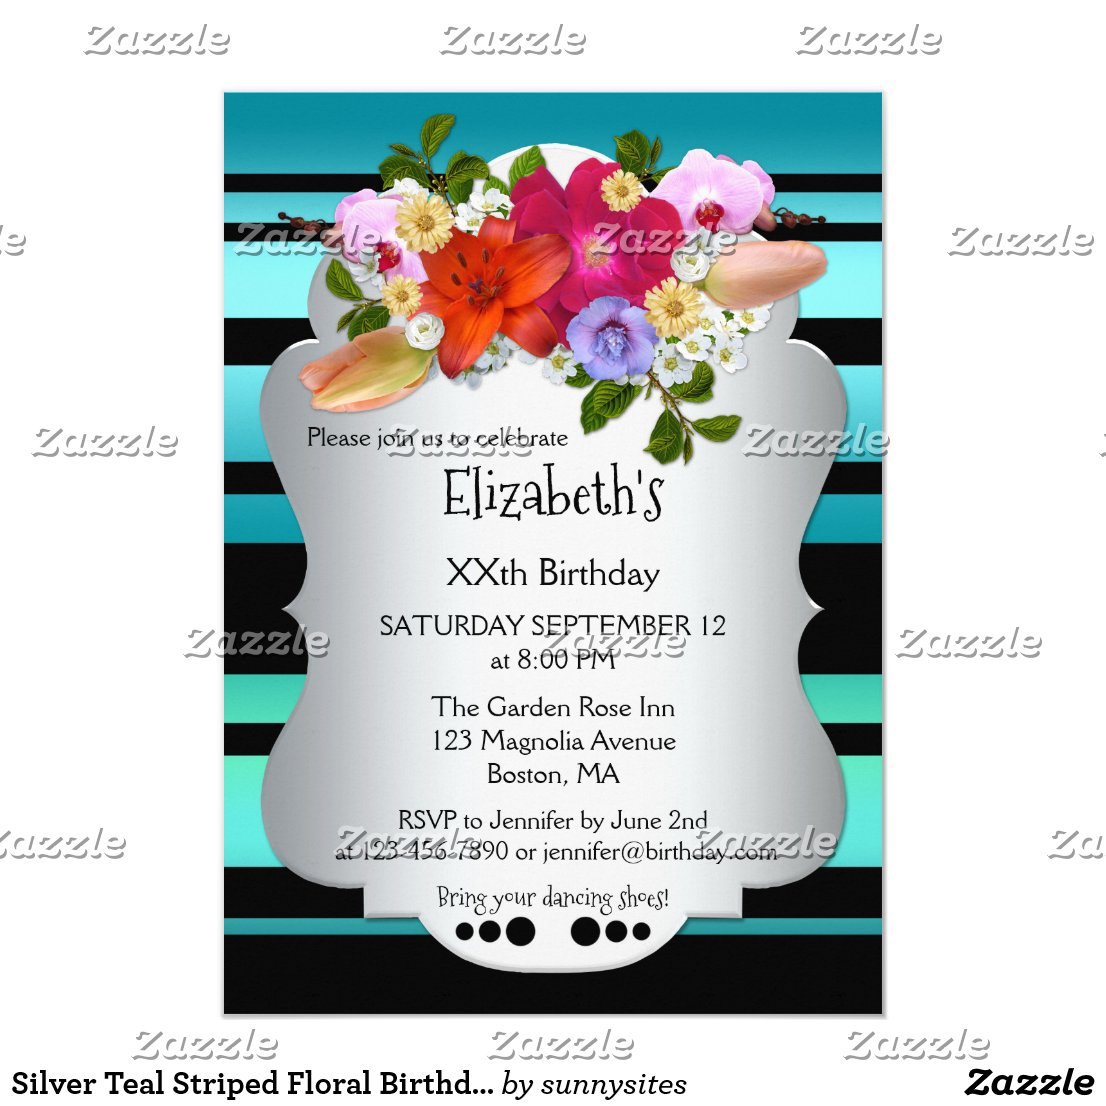 Silver Teal Striped Floral Birthday Invitation